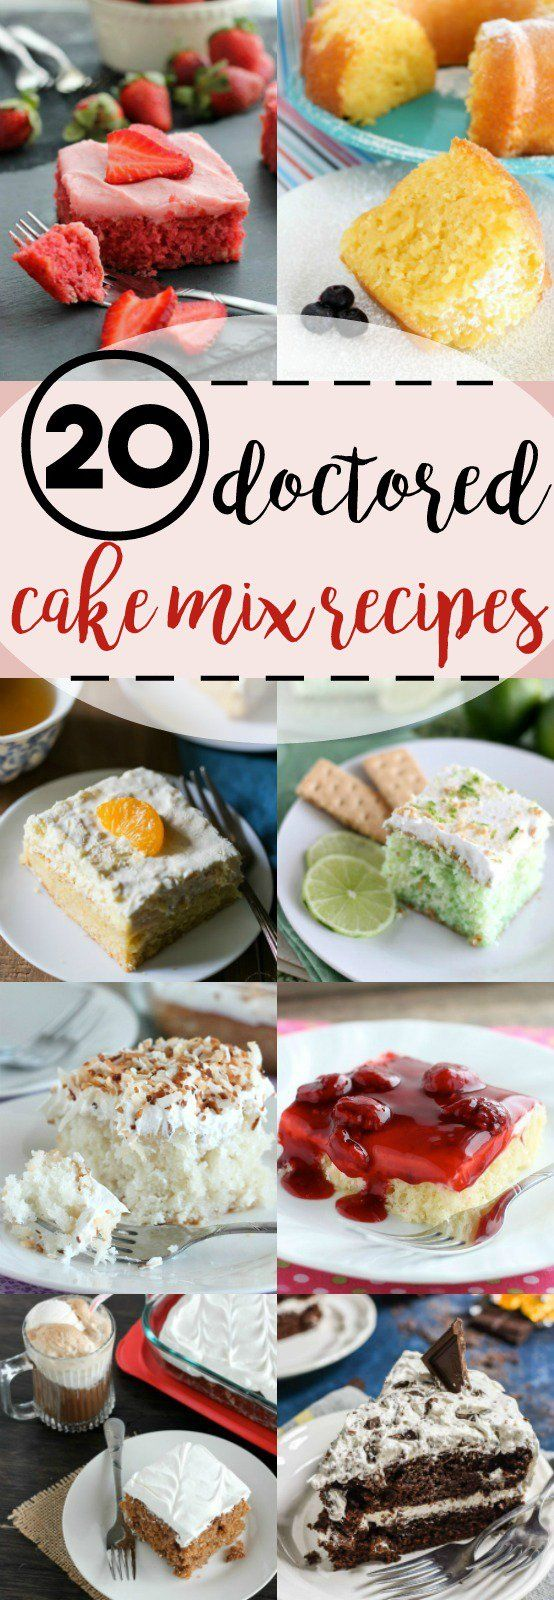 Dessert is everyone's favorite, so why not grab a cake mix from your pantry and doctor it up into one of these cake mix recipes?! No one will be able to guess that you took a shortcut and used a cake mix with these tasty cakes and treats.